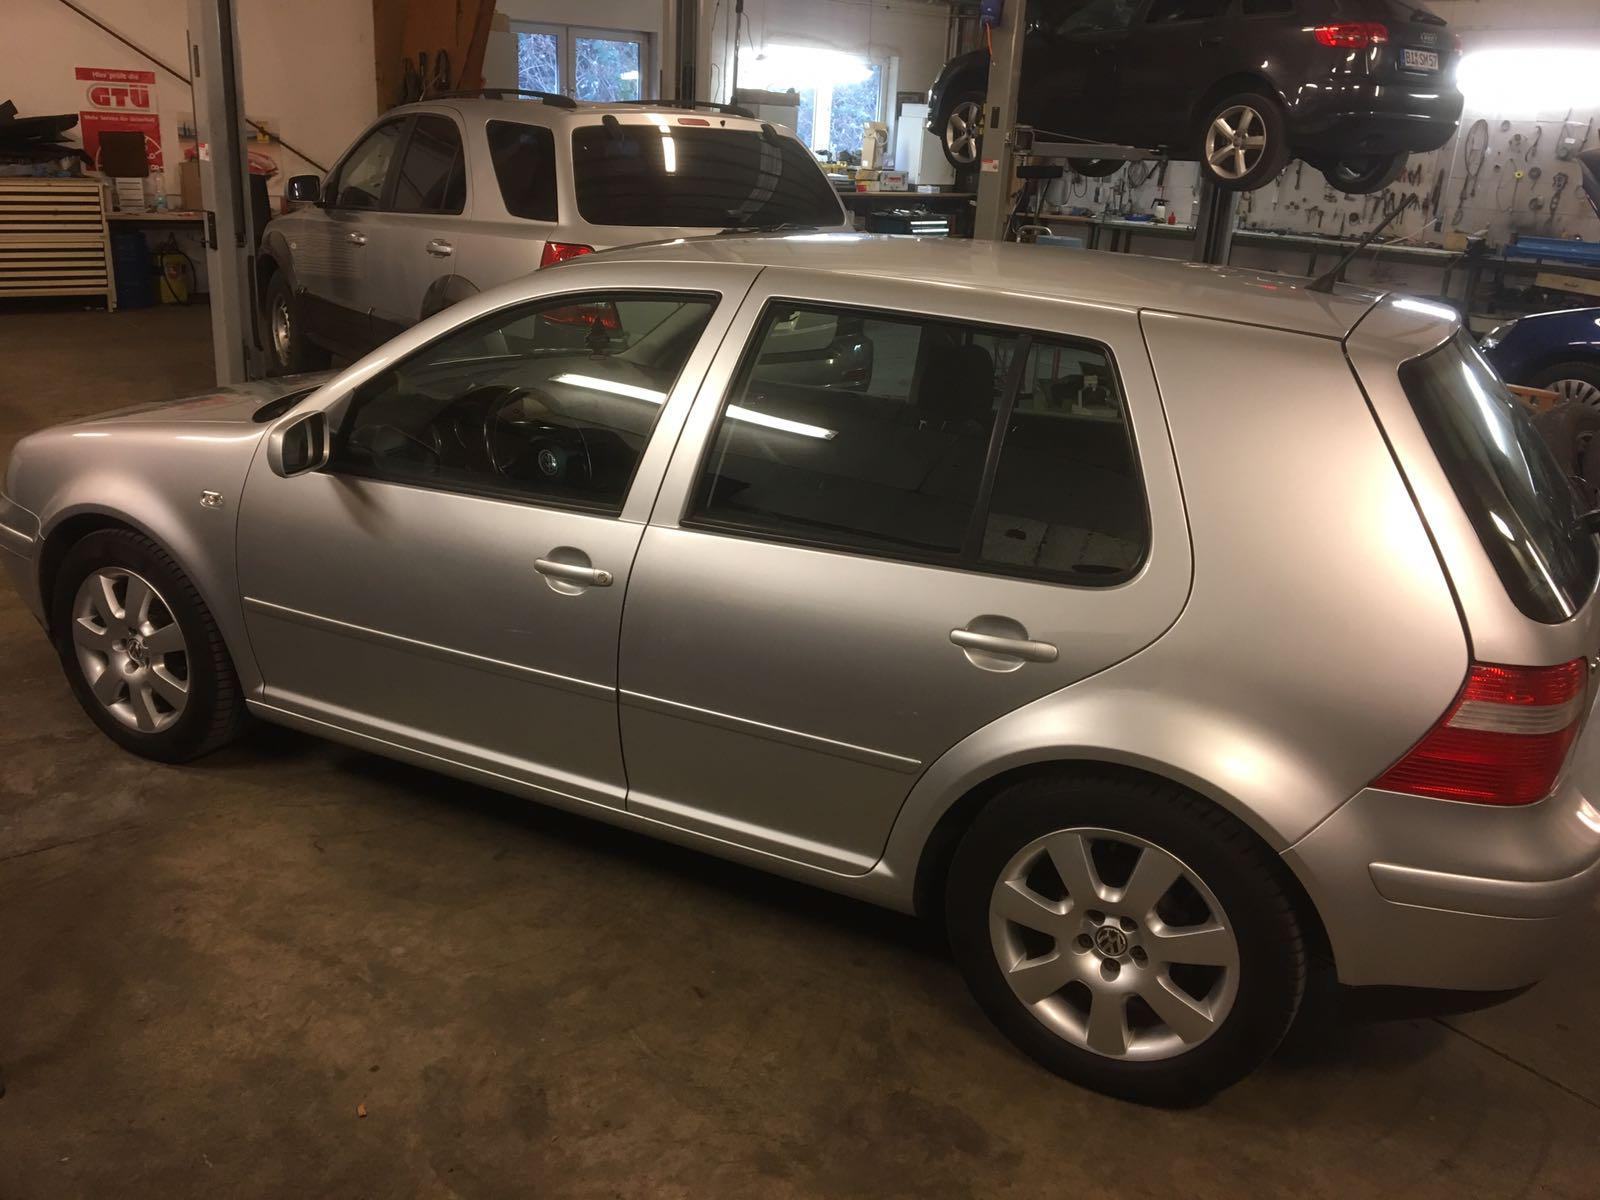 vw golf iv tdi 100 pacific 2003 garage des golf iv tdi 100 forum volkswagen golf iv. Black Bedroom Furniture Sets. Home Design Ideas